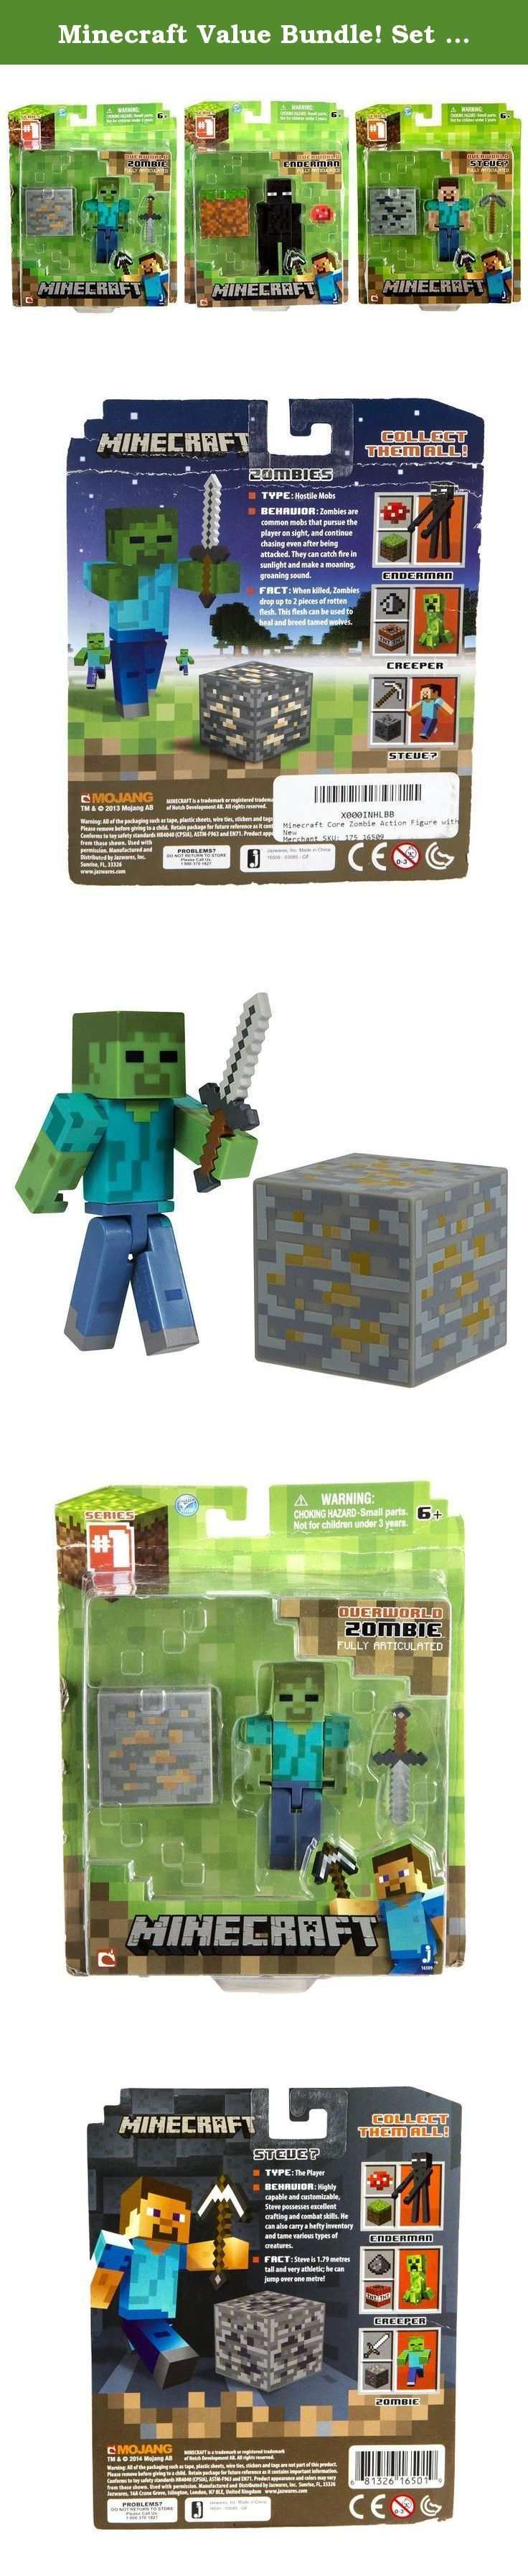 Minecraft Value Bundle! Set of 3! Core Steve, Enderman and Zombie Action Figures with Accessories. Minecraft Core Steve Action Figure with Accessory In countless worlds Steve is happy to dig endlessly in a quest for diamonds and glory, and now he can continue his quest at your home. Steve comes with his removable pickaxe and a Dirt Block accessory so that he can get to work right away. His poseable arms help tackle any obstacle; he makes a great gift for Minecraft enthusiasts, fans and…